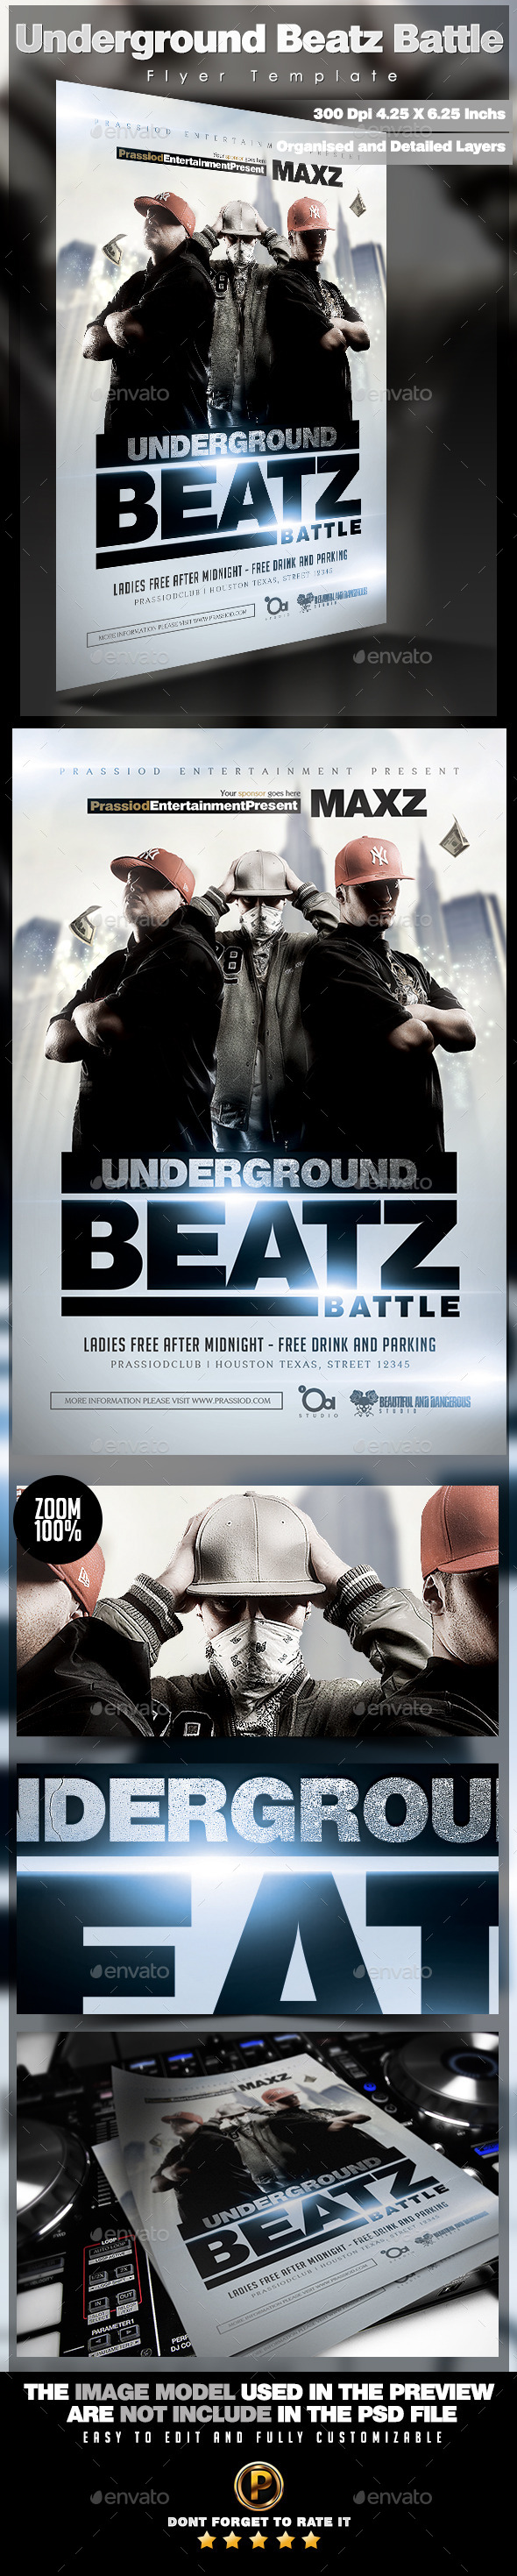 Underground Beatz Battle Flyer Template - Clubs & Parties Events